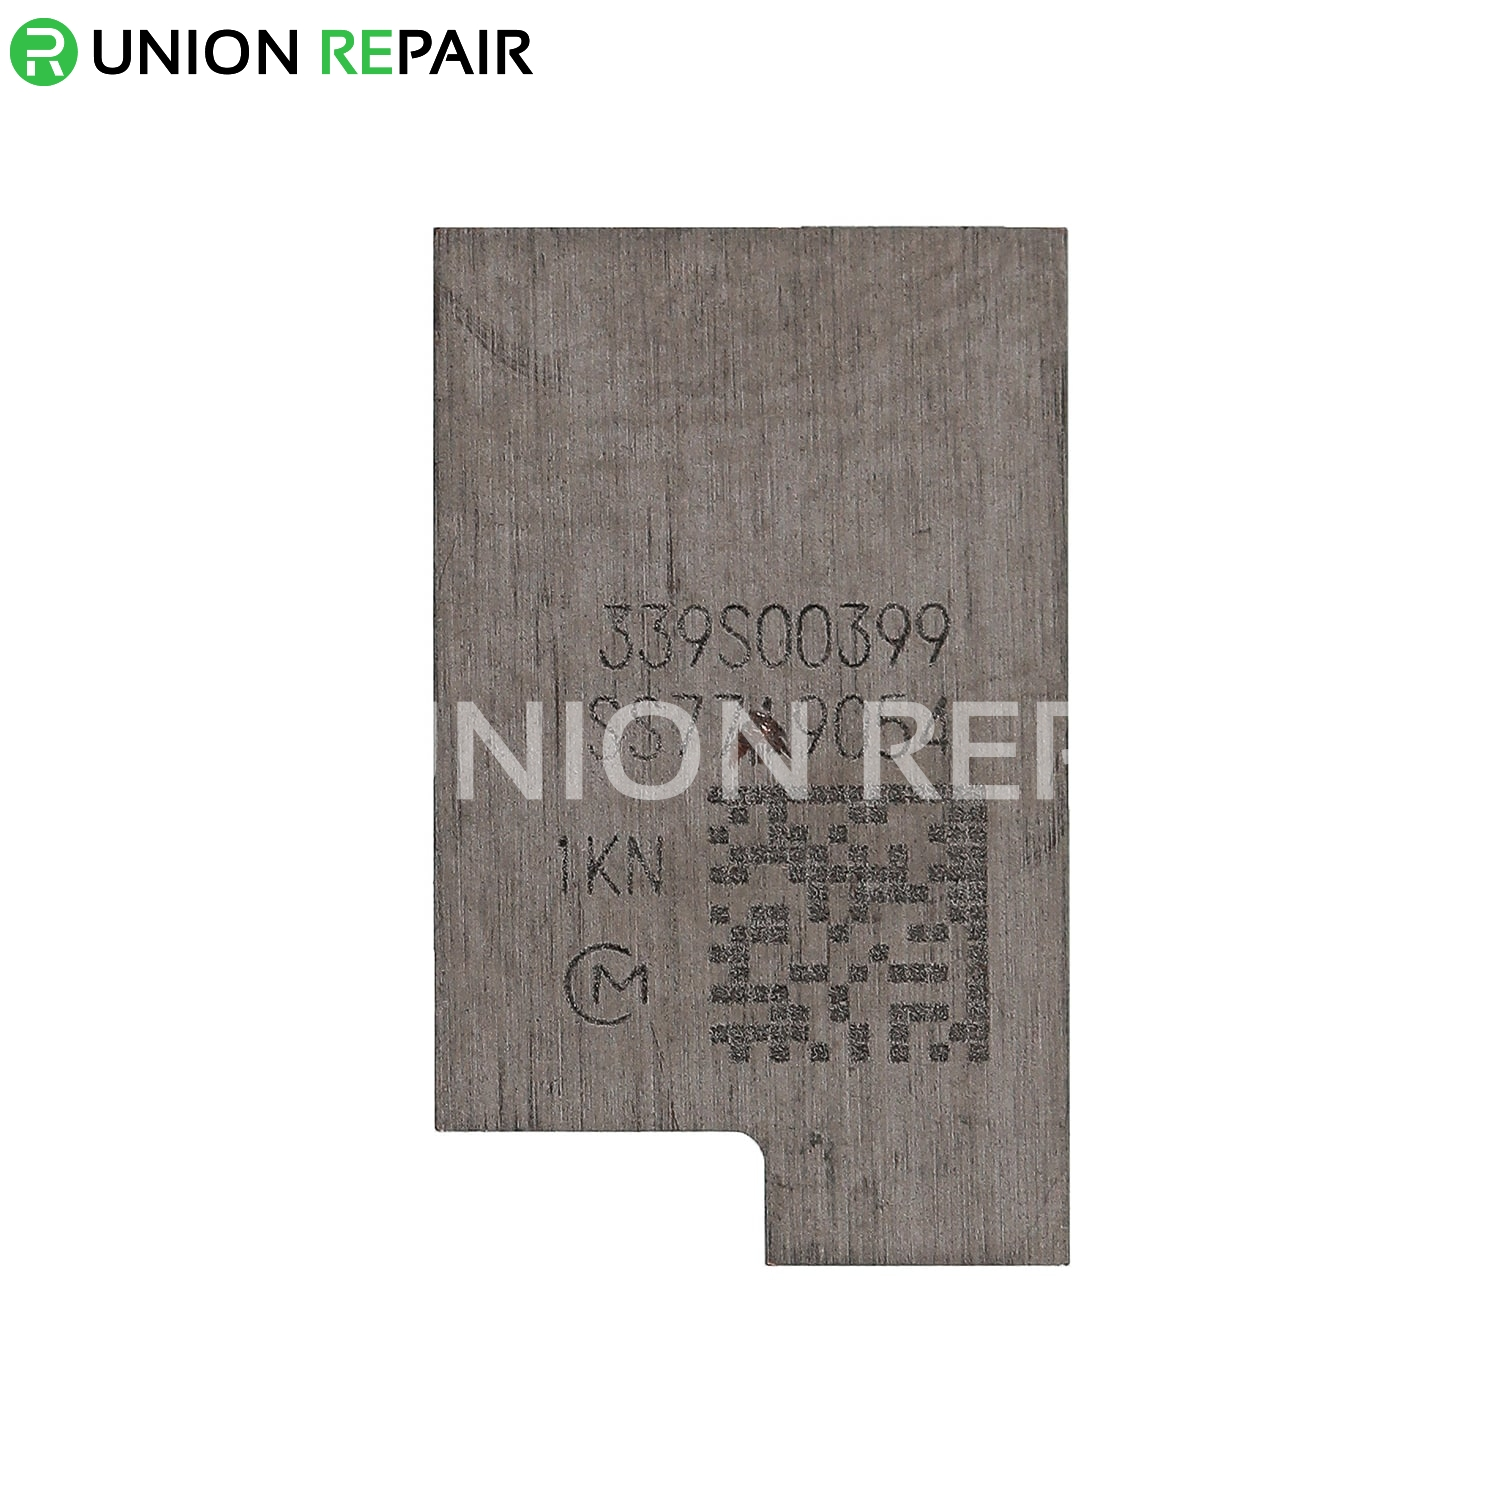 Replacement for iPhone 8/8 Plus WiFi IC 339S00399